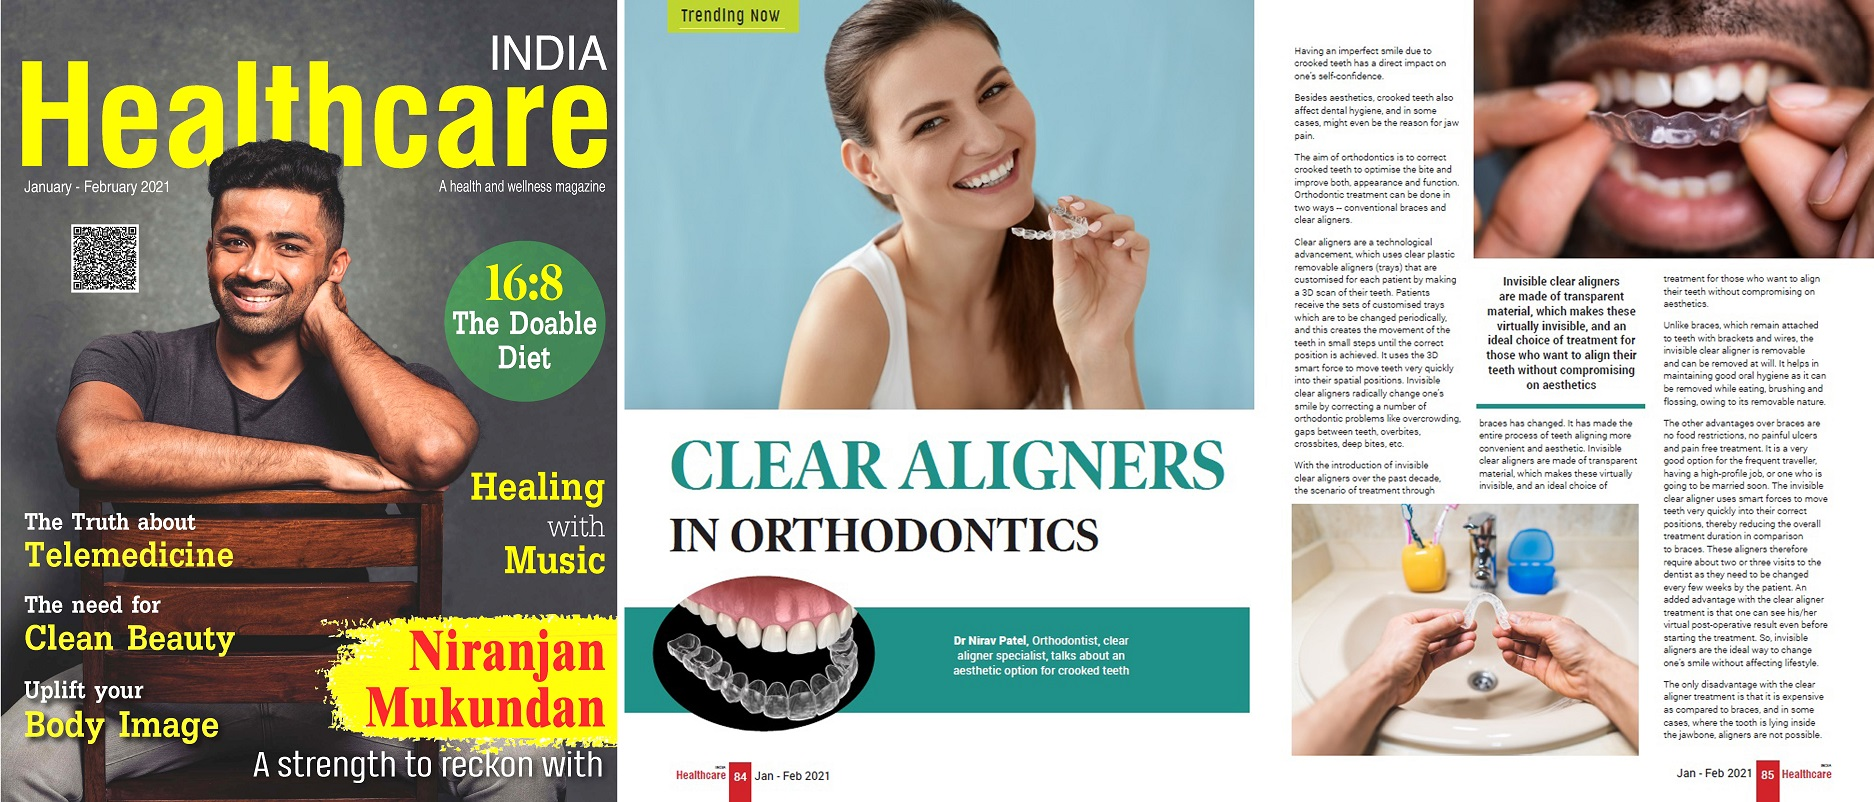 invisalign best orthodontist clear braces aligners invisible ahmedabad satellite